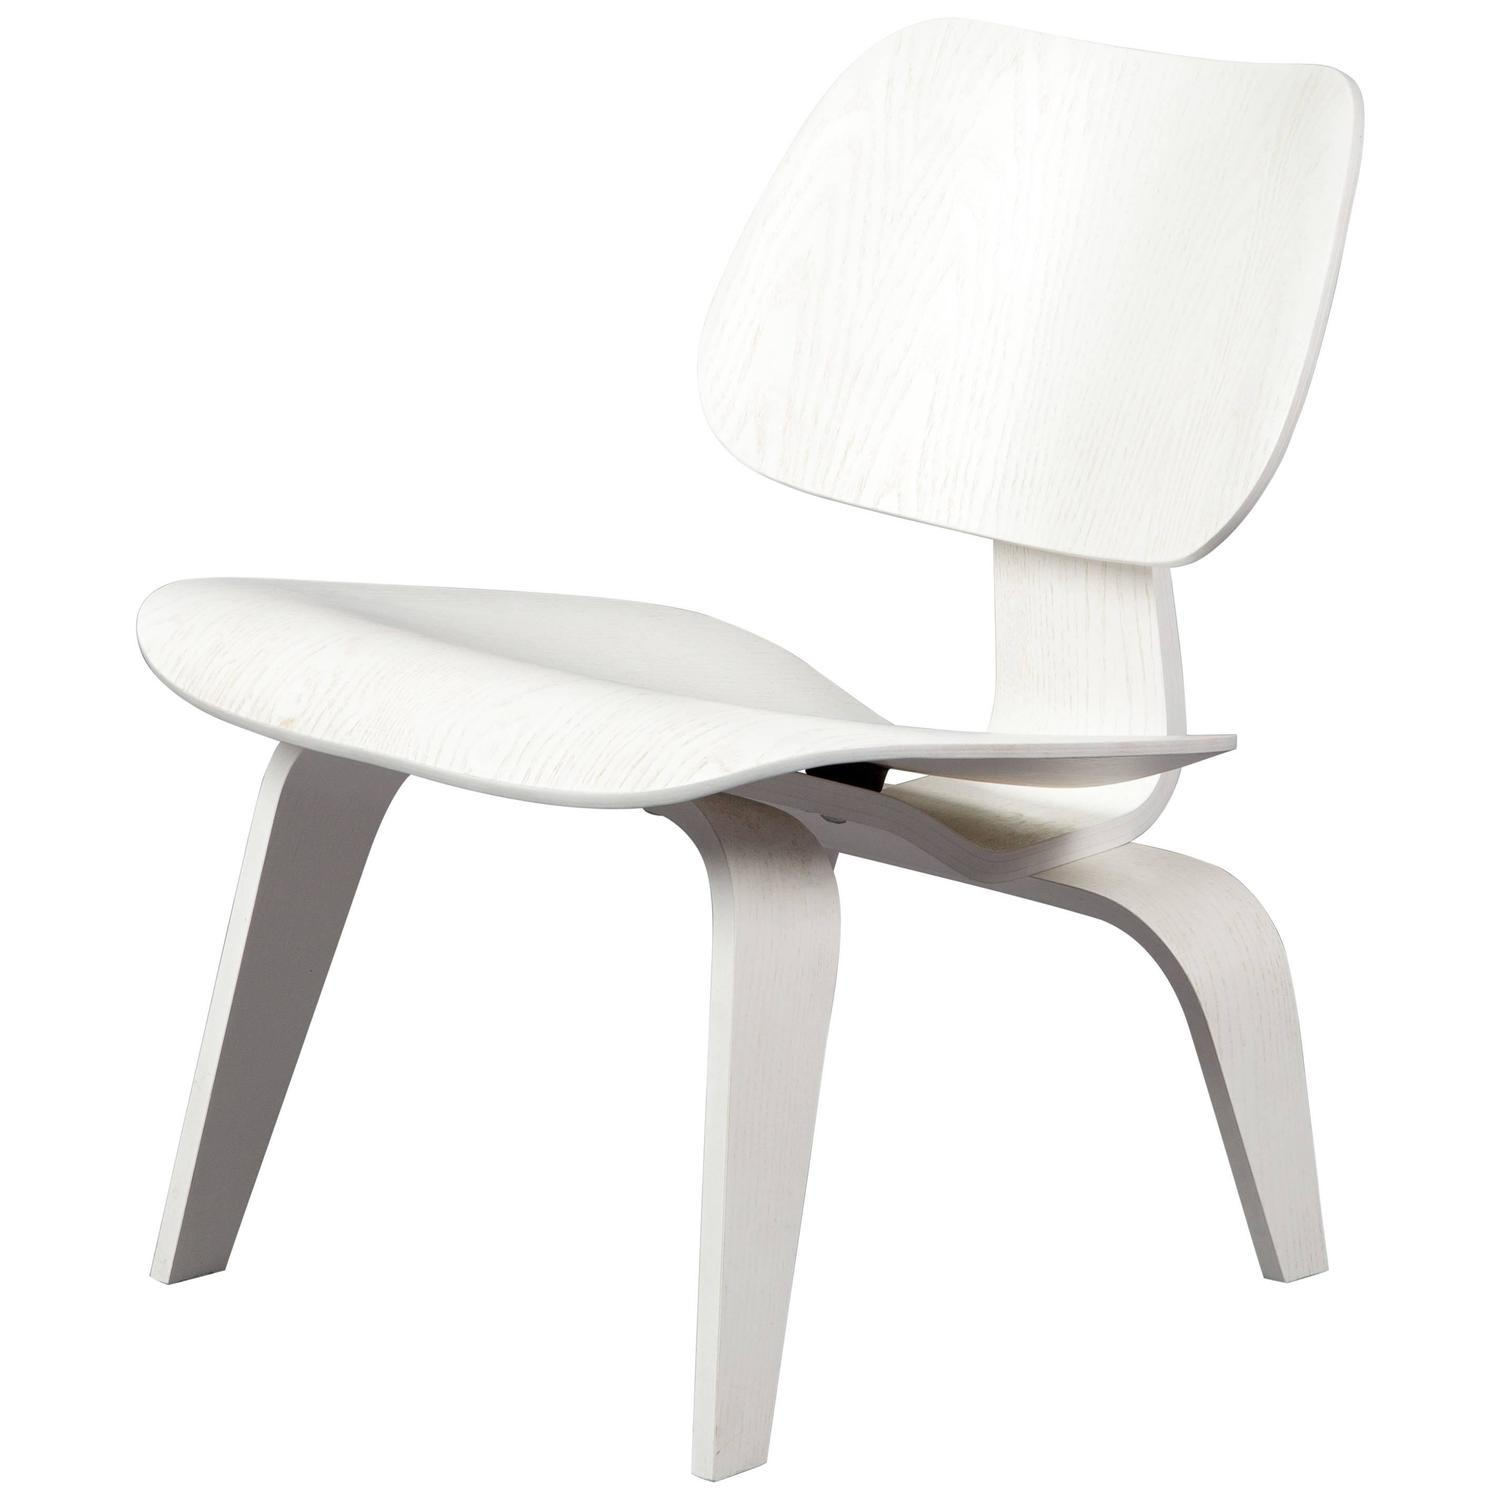 lounge chair wood 39 lcw 39 white limited edition eames vitra for sale at 1stdibs. Black Bedroom Furniture Sets. Home Design Ideas